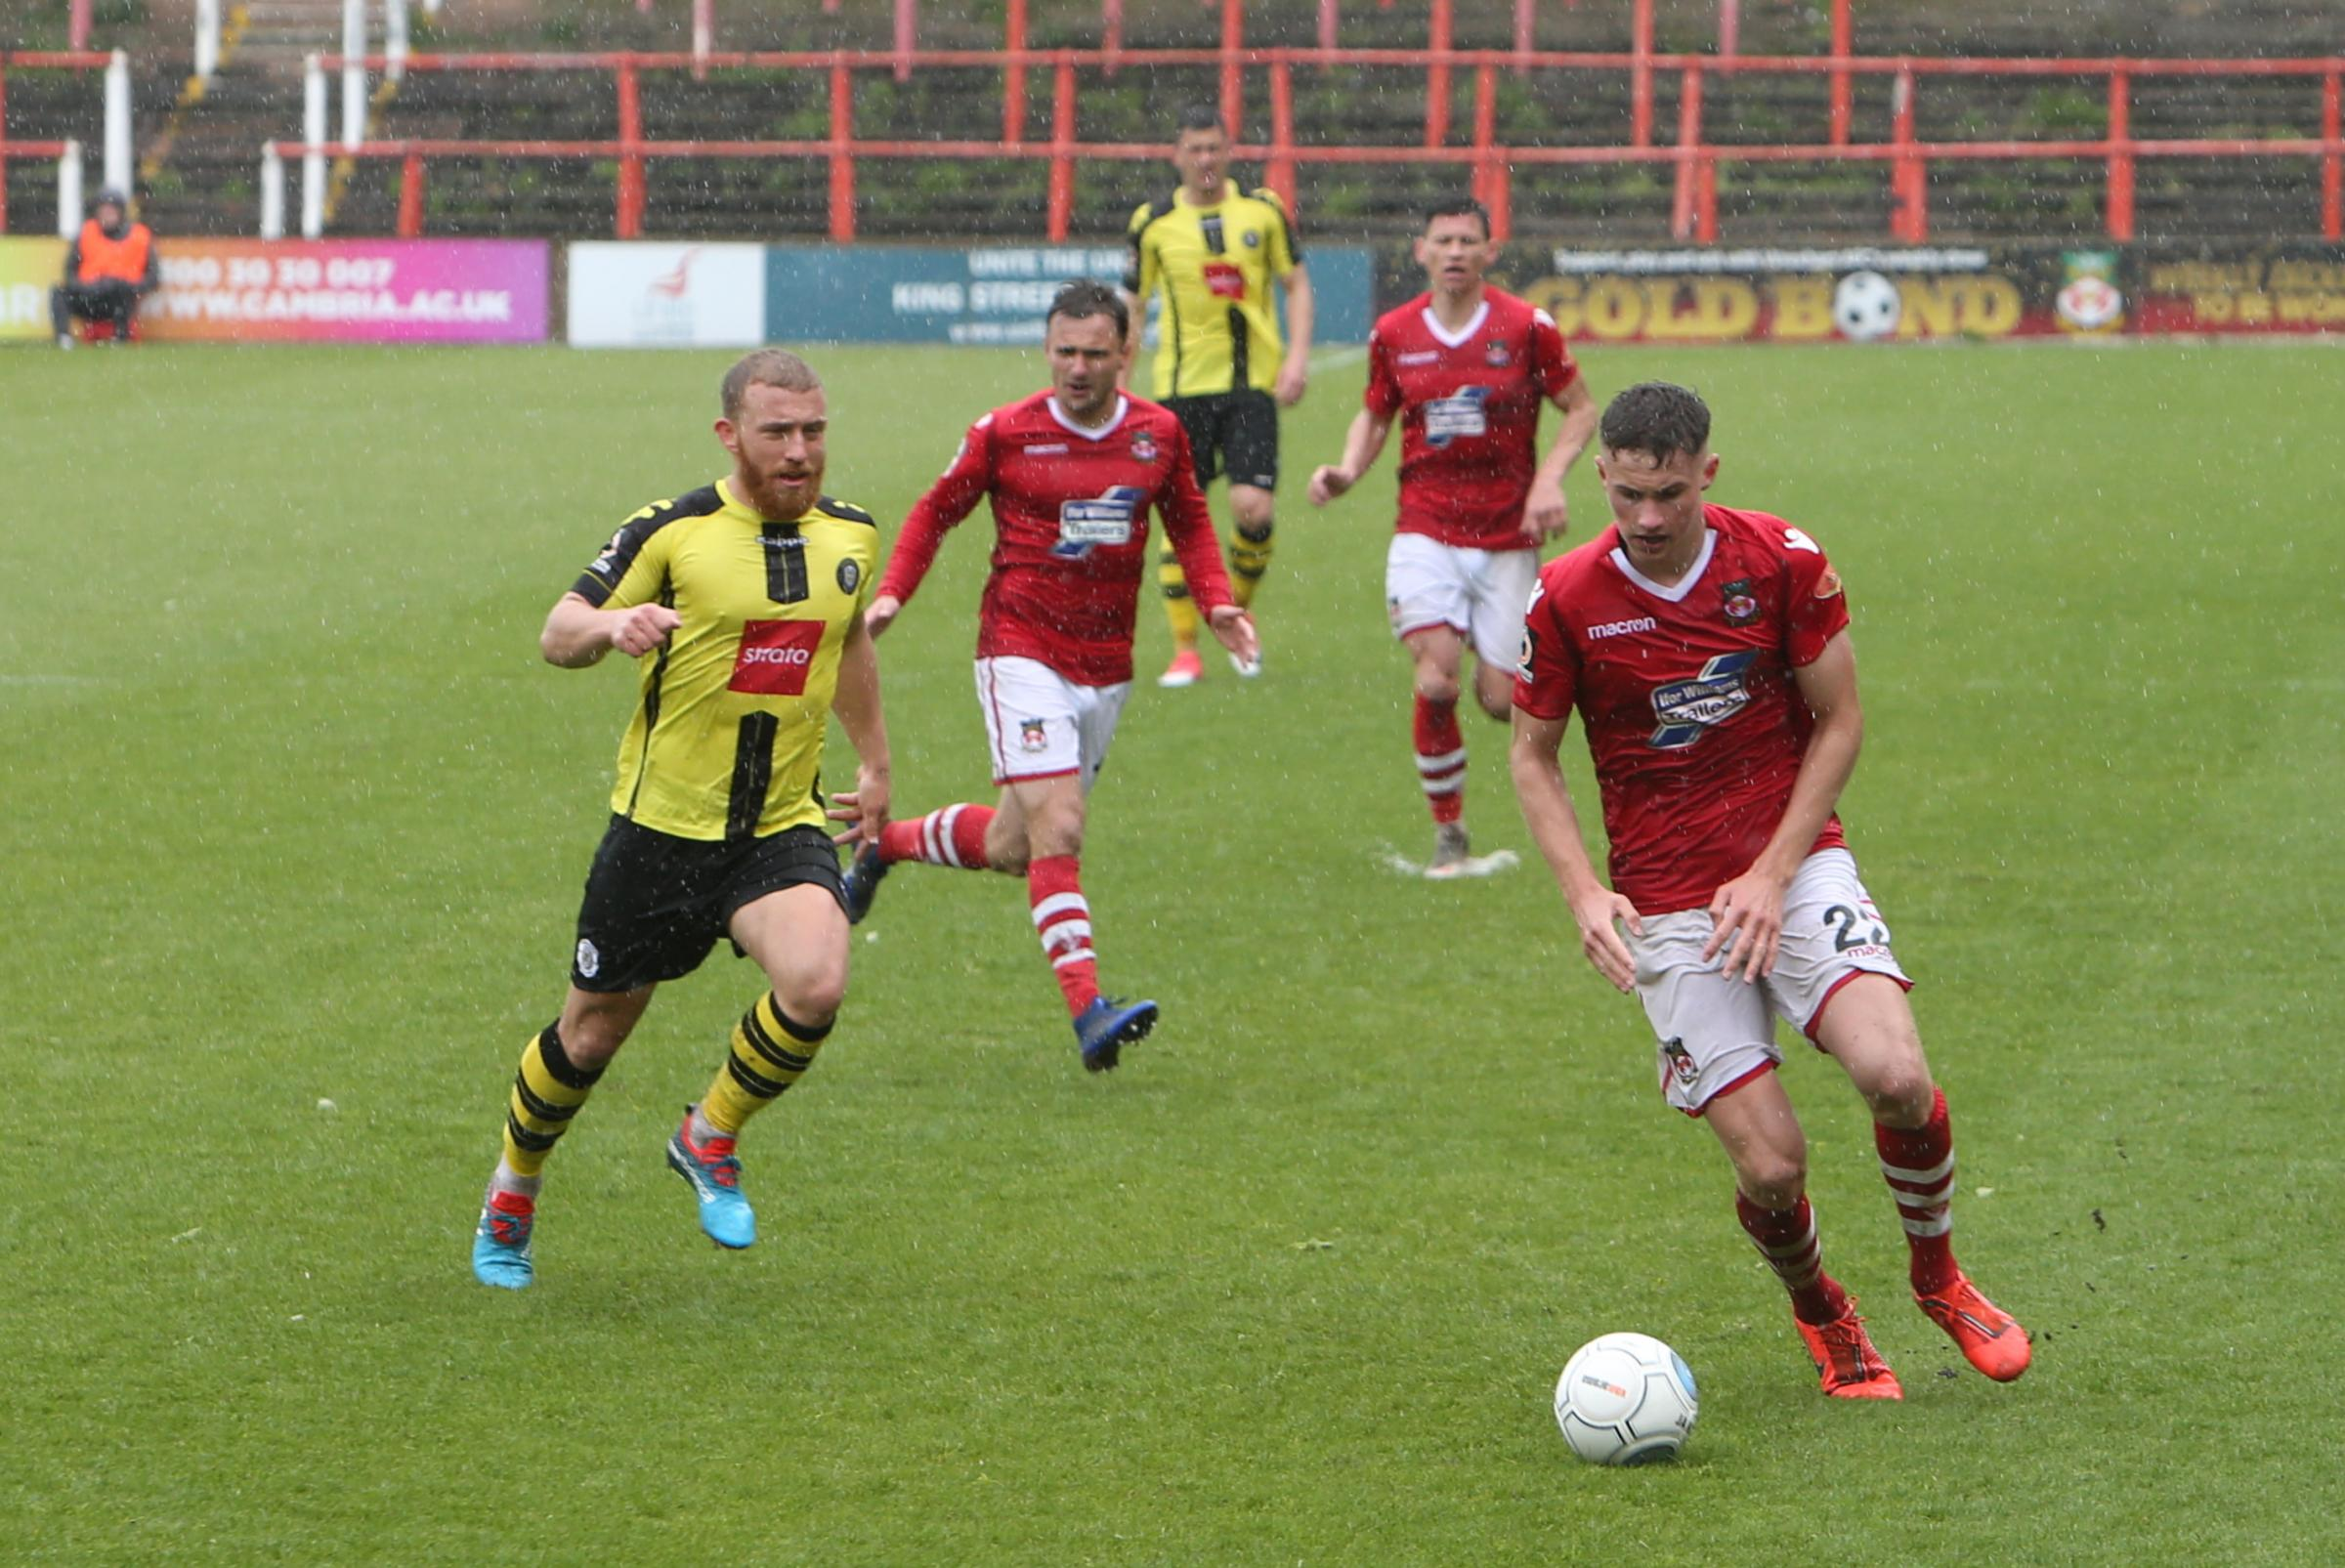 Wrexham AFC first year pro Matty Sargent hungry for more senior action after making the breakthrough